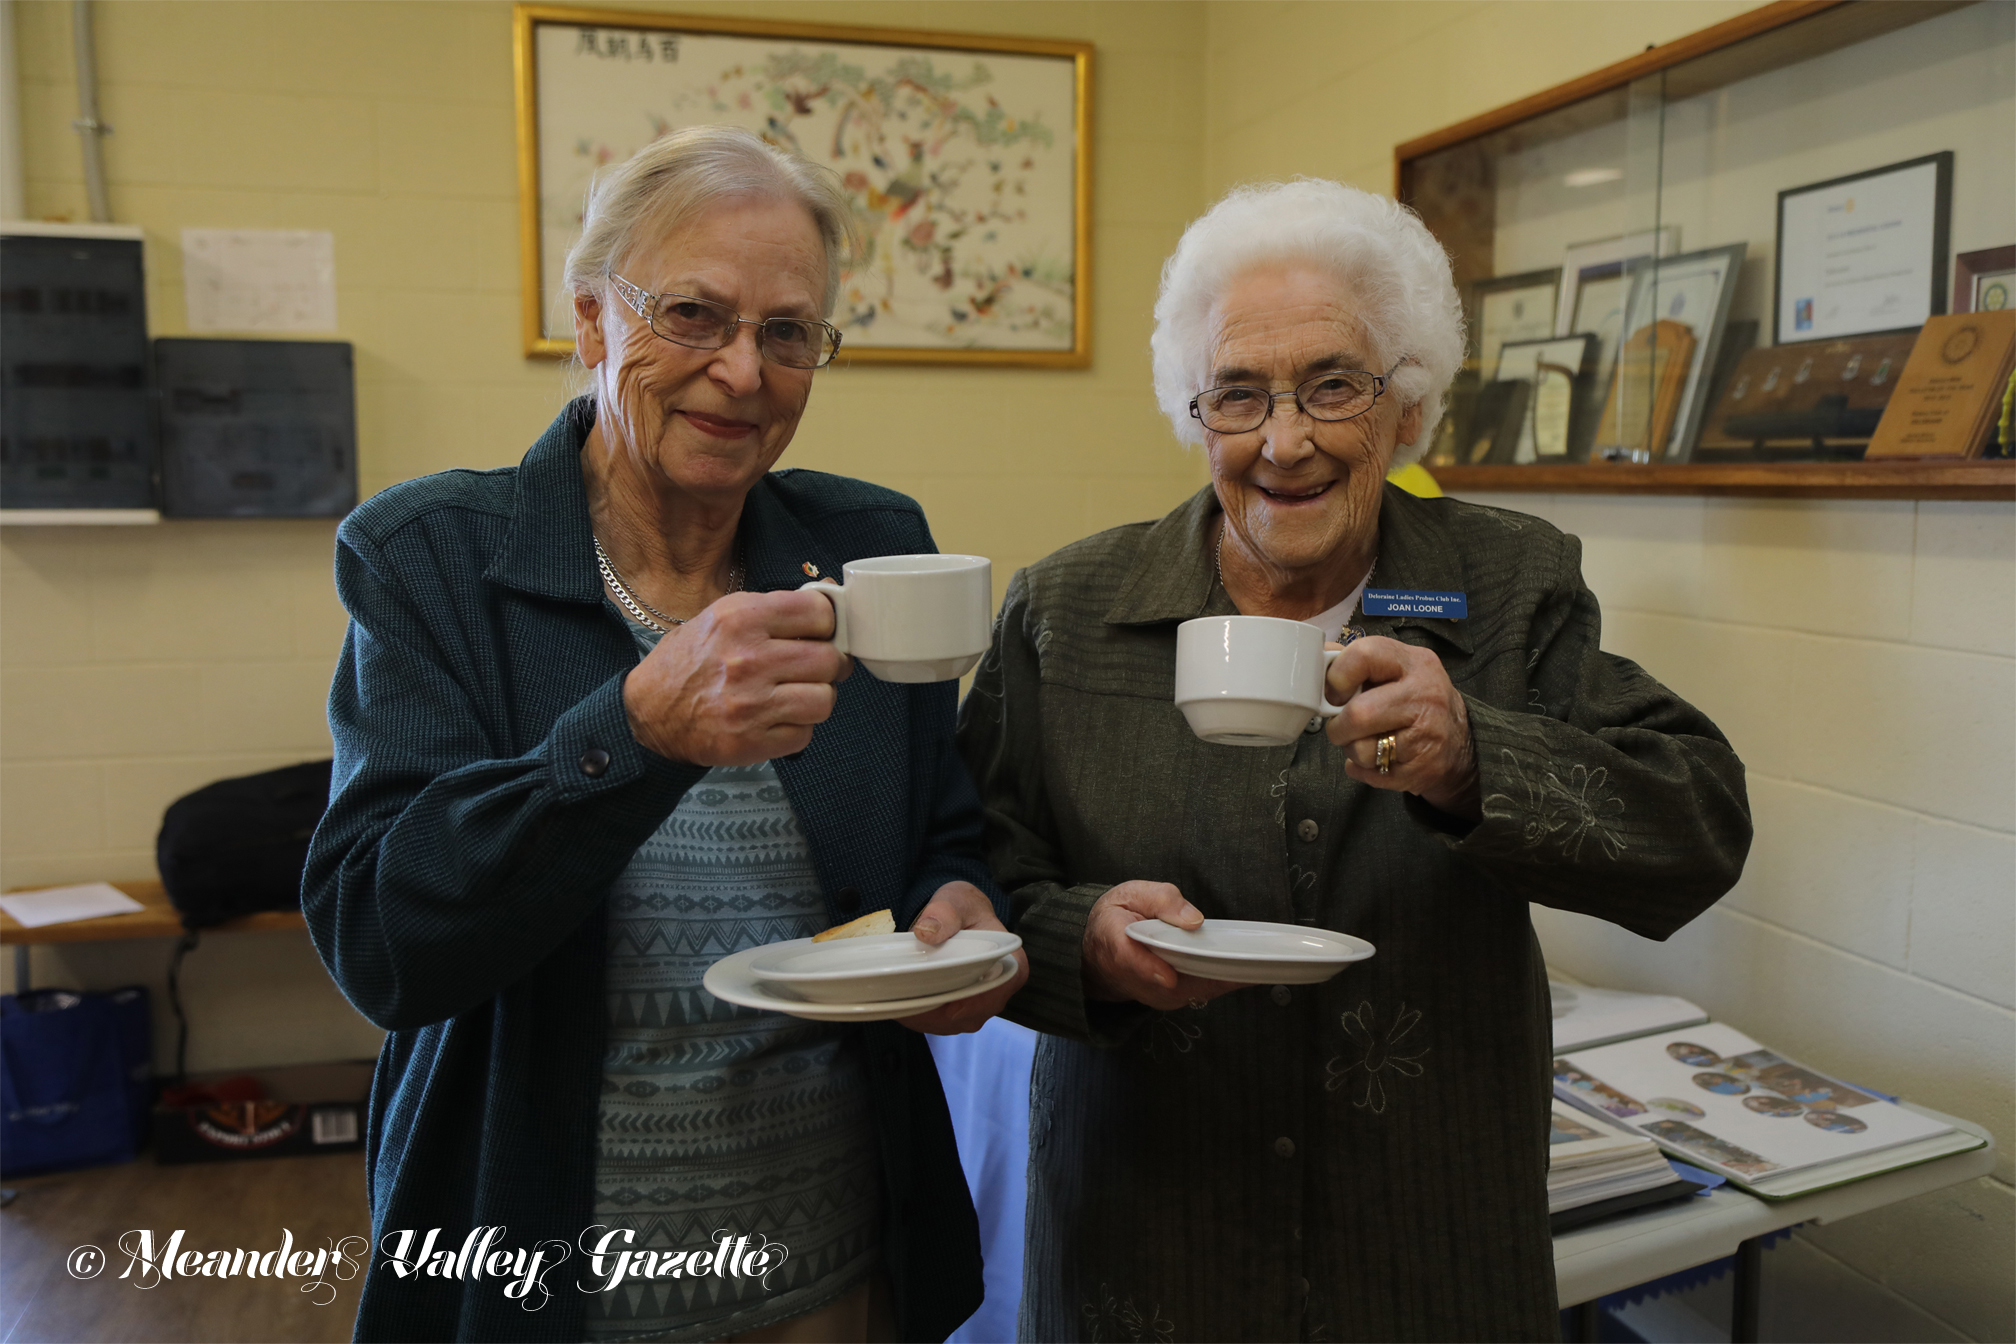 Newest Probus member Vicki Downing and Foundation member Joan Loone share a welcome cuppa.  Photo by Mike Moores